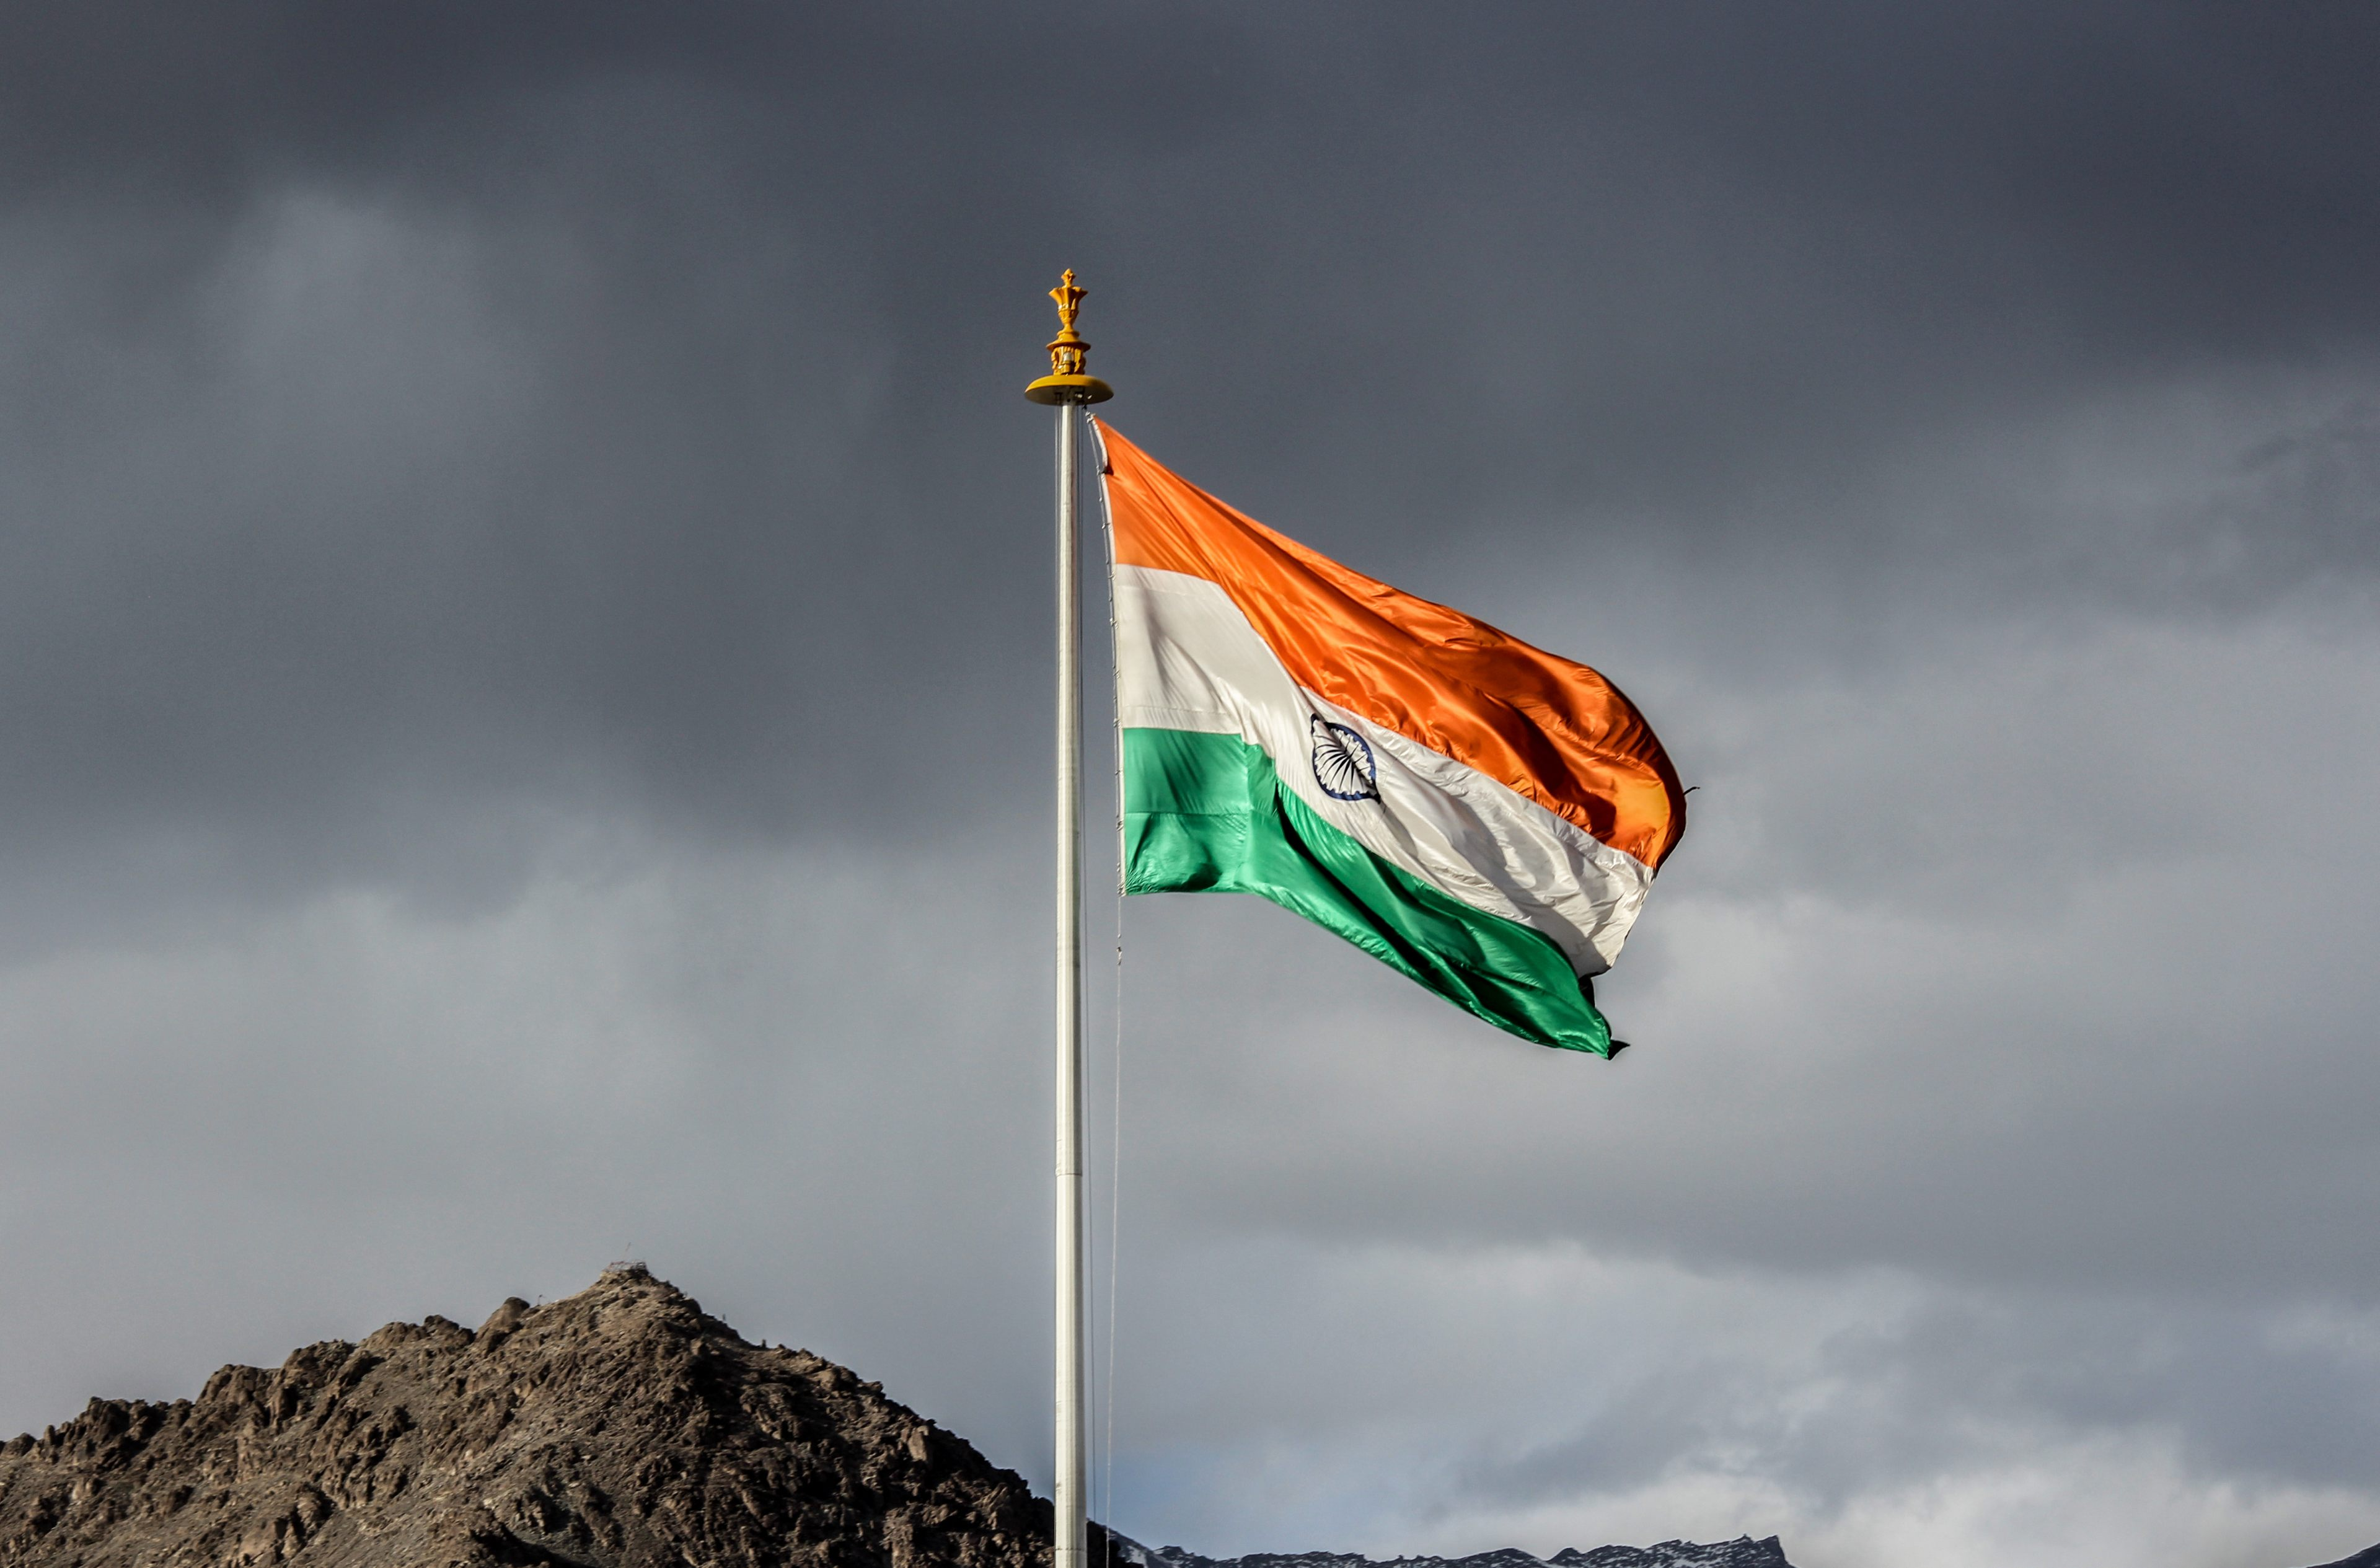 Awesome Beautiful Indian Flag Wallpaper 4k At Mountain Indian Flag 4k Wallpaper For Mobile 30843 Hd Wallpaper Backgrounds Download